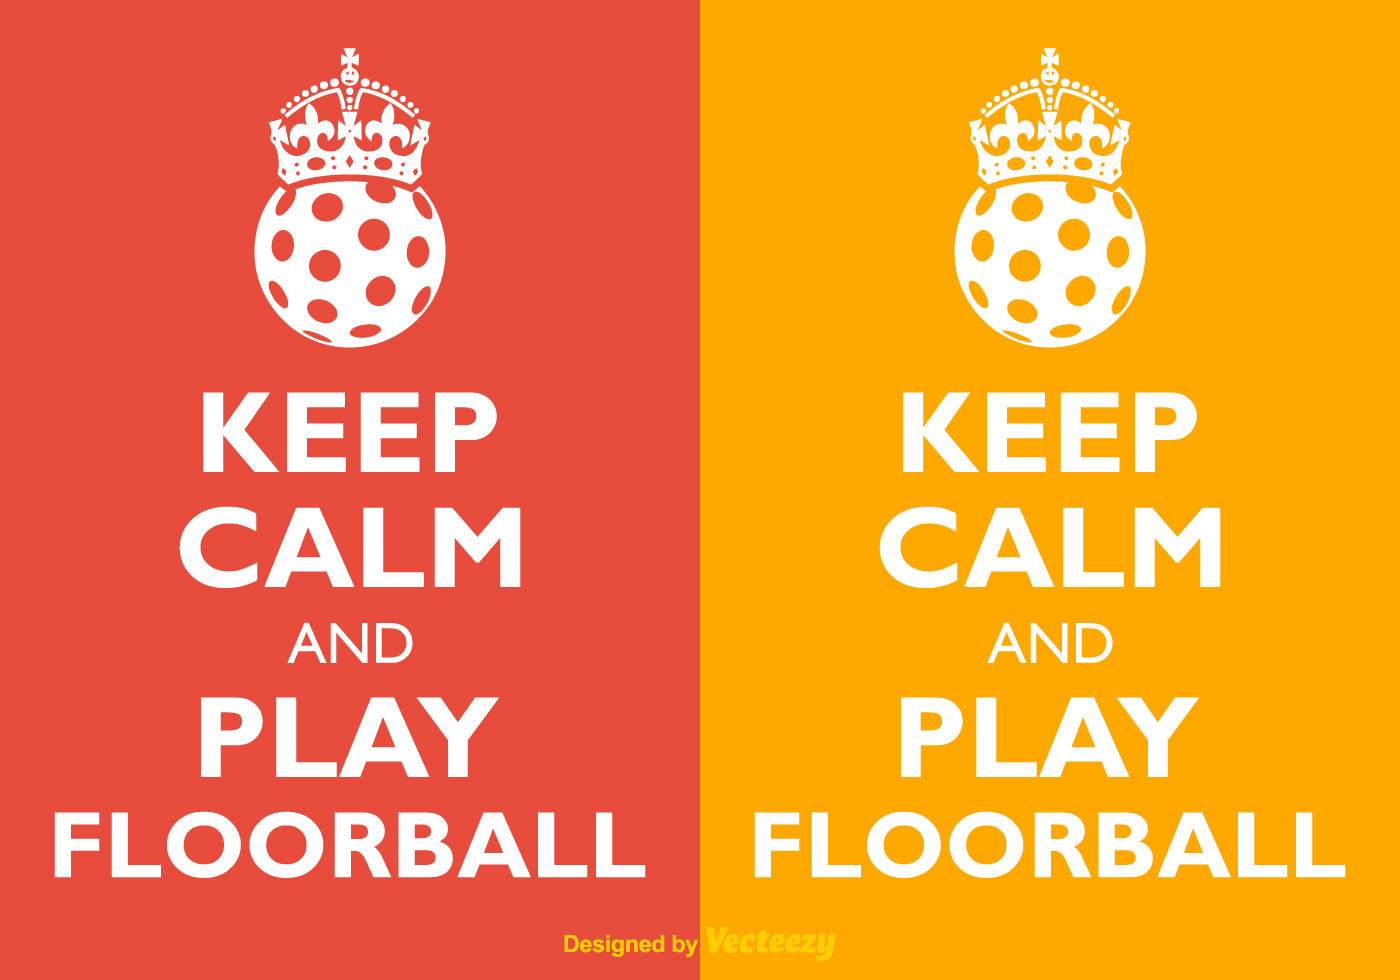 Vector Keep Calm And Play Floorball - Download Free Vector Art ...